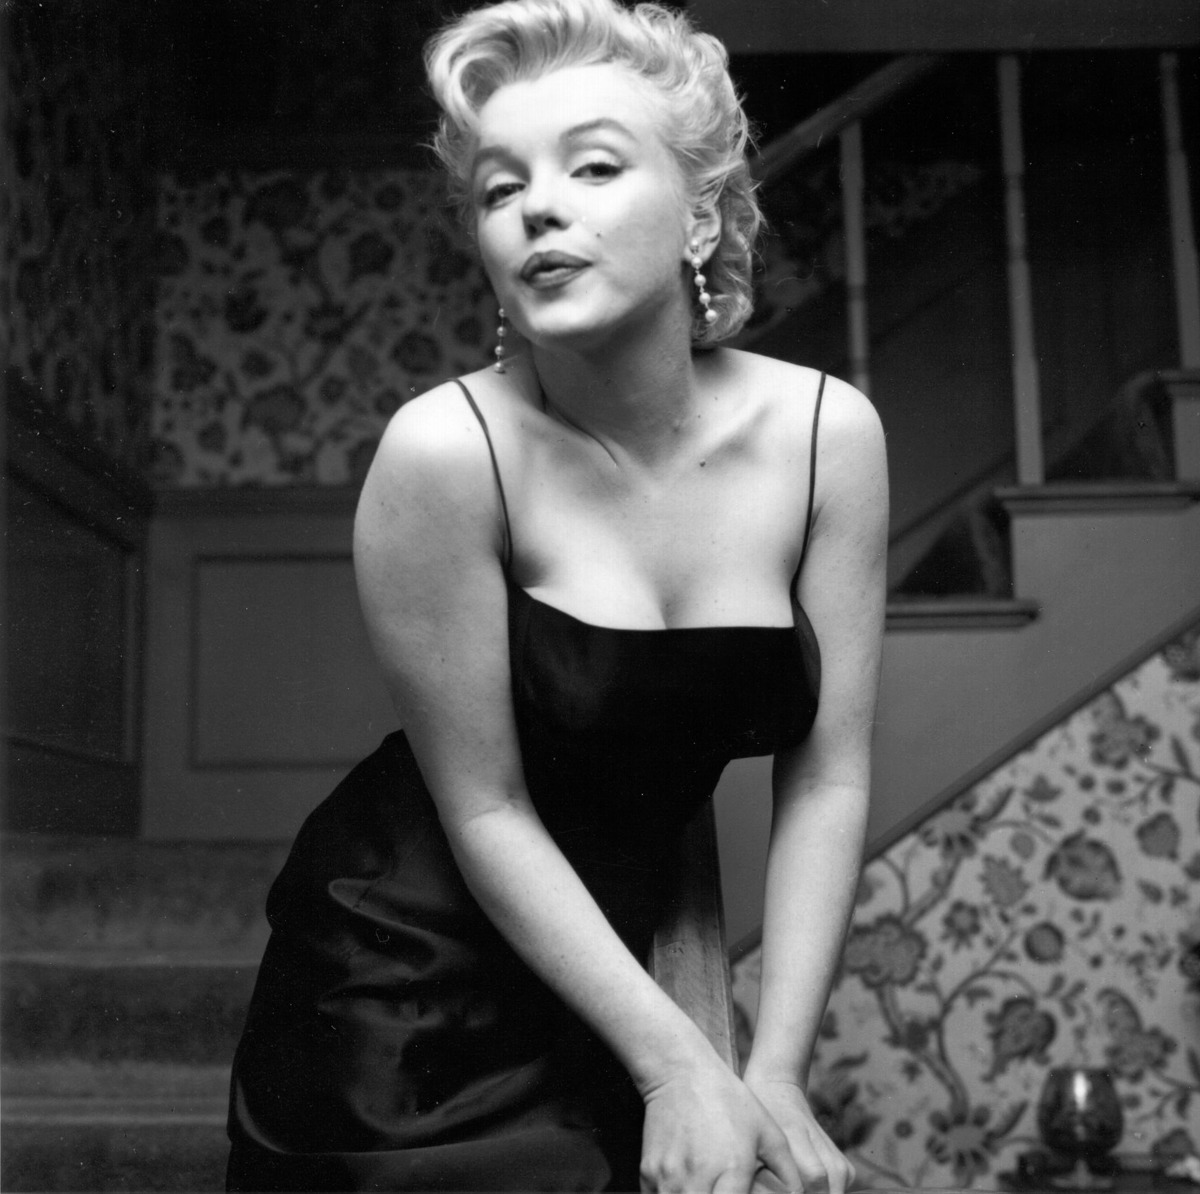 Movie star Marilyn Monroe hosts a press party held at her home on March 3, 1956 in Los Angeles.